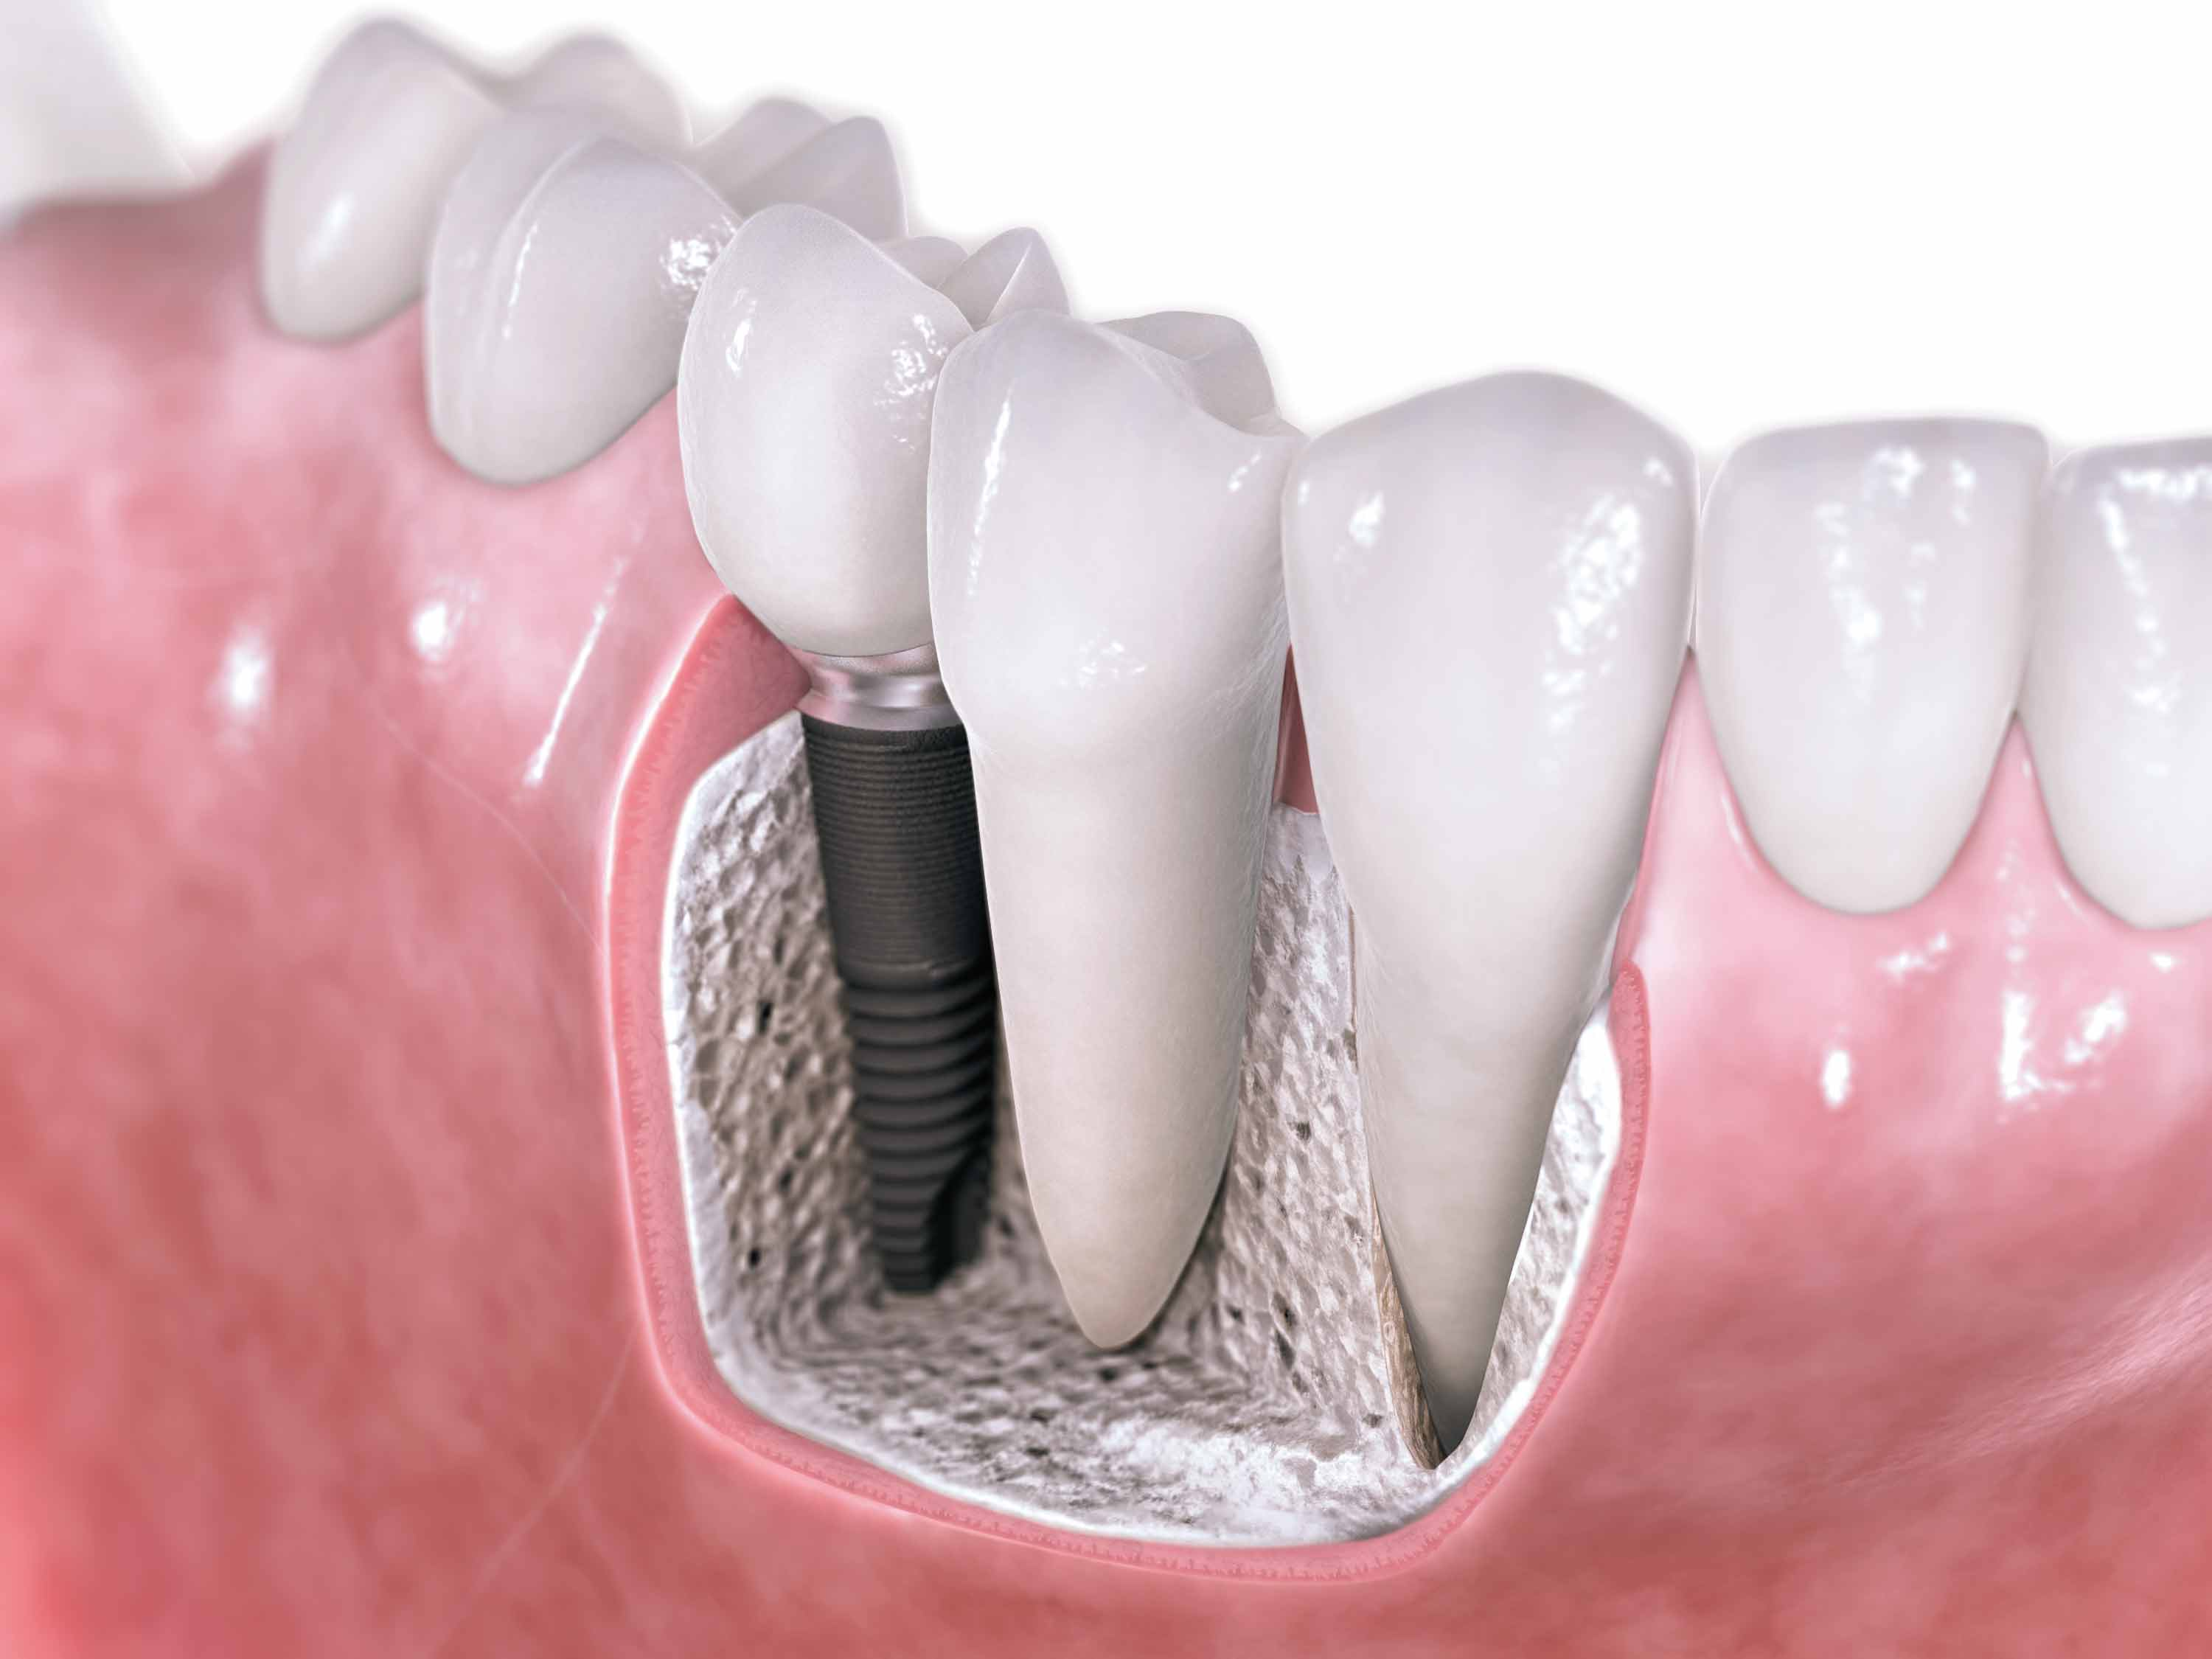 Hex-Dental-Implantat.jpg